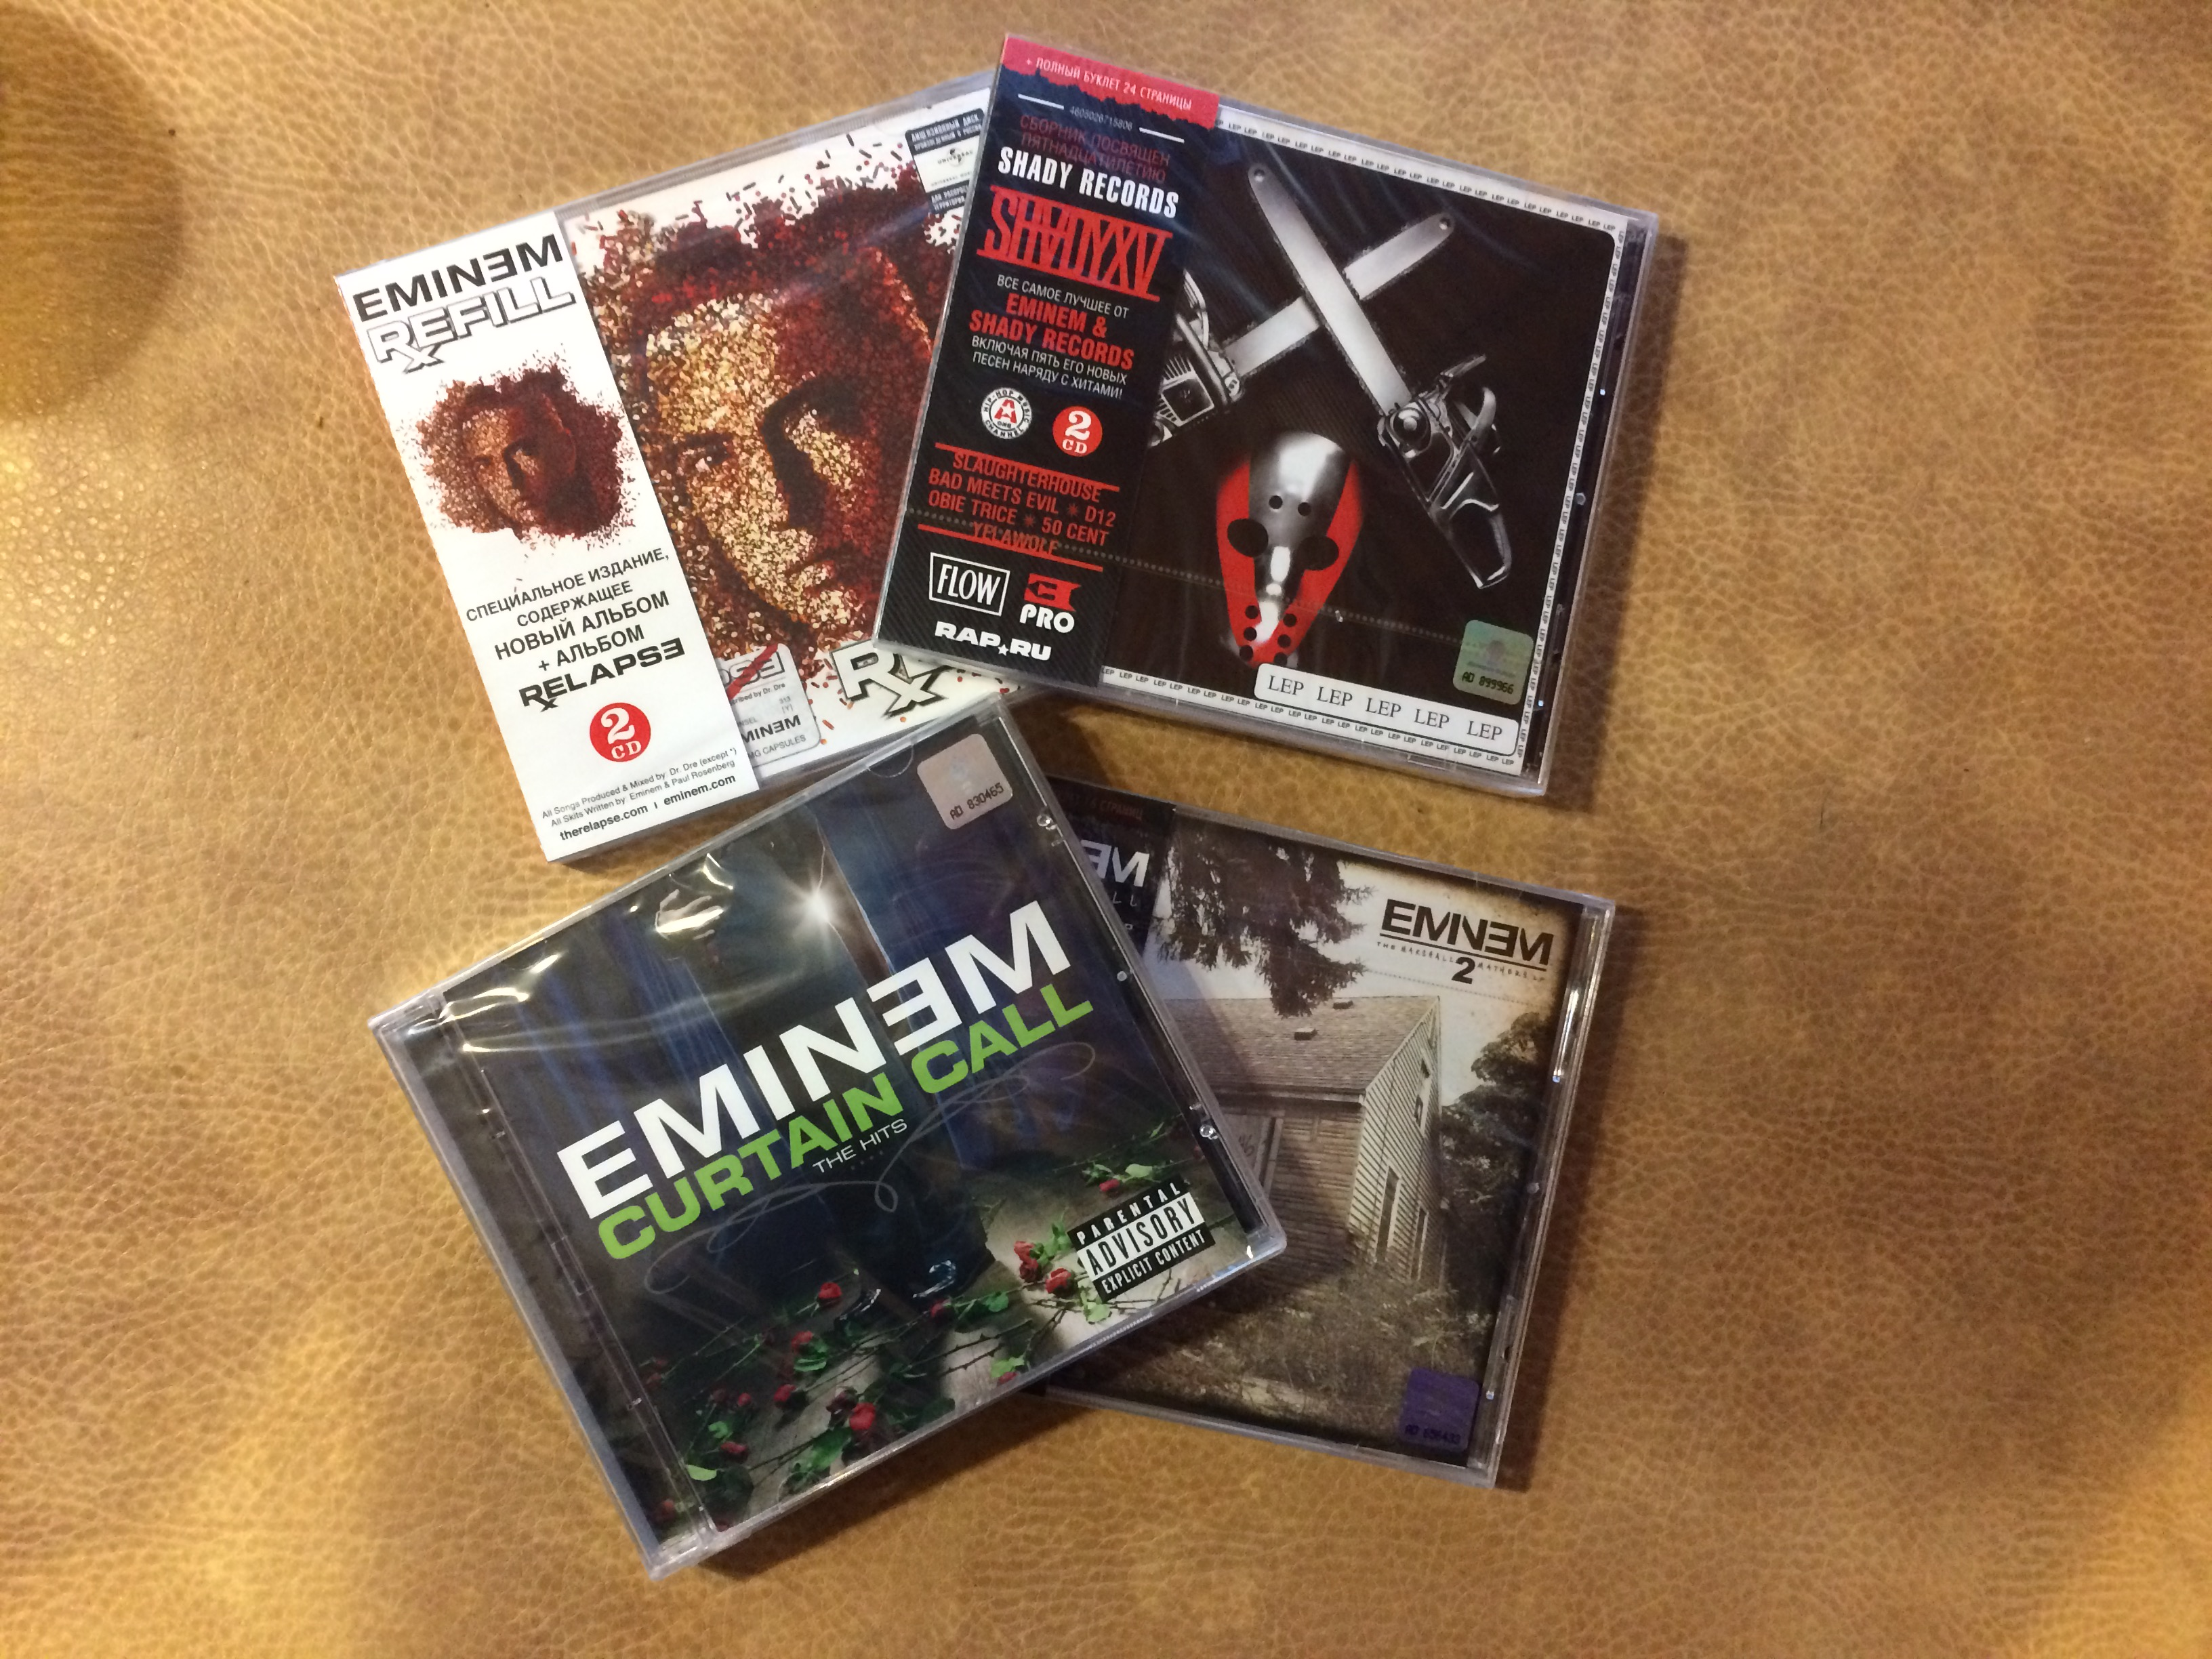 The Marshall Mathers LP 2, Relapse: Refill, Curtain Call, SHADYXV